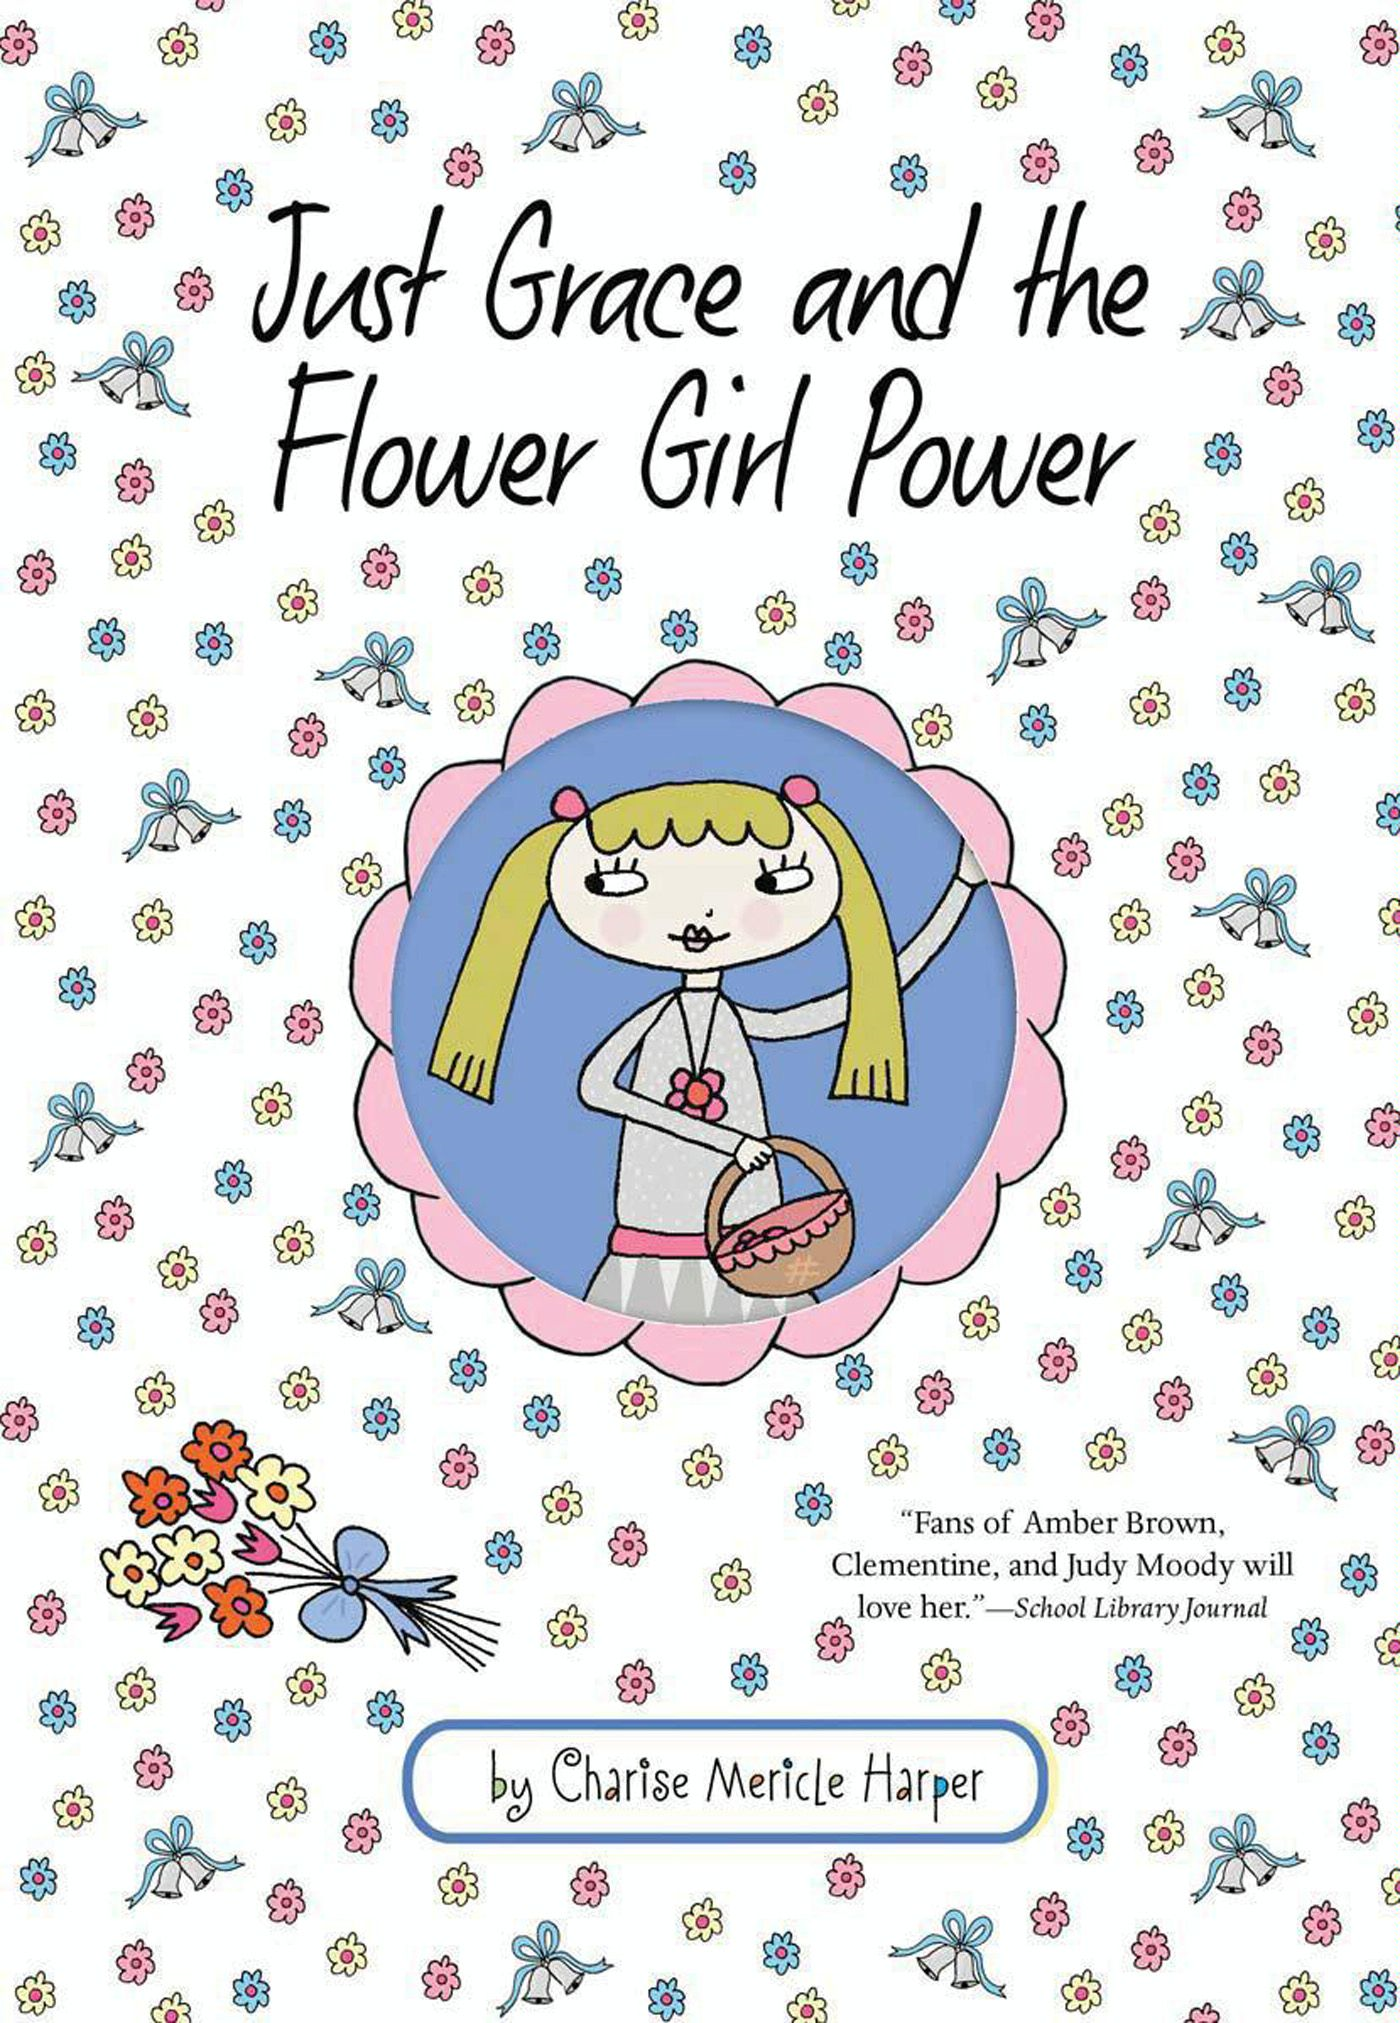 Just Grace and the Flower Girl Power By: Charise Mericle Harper